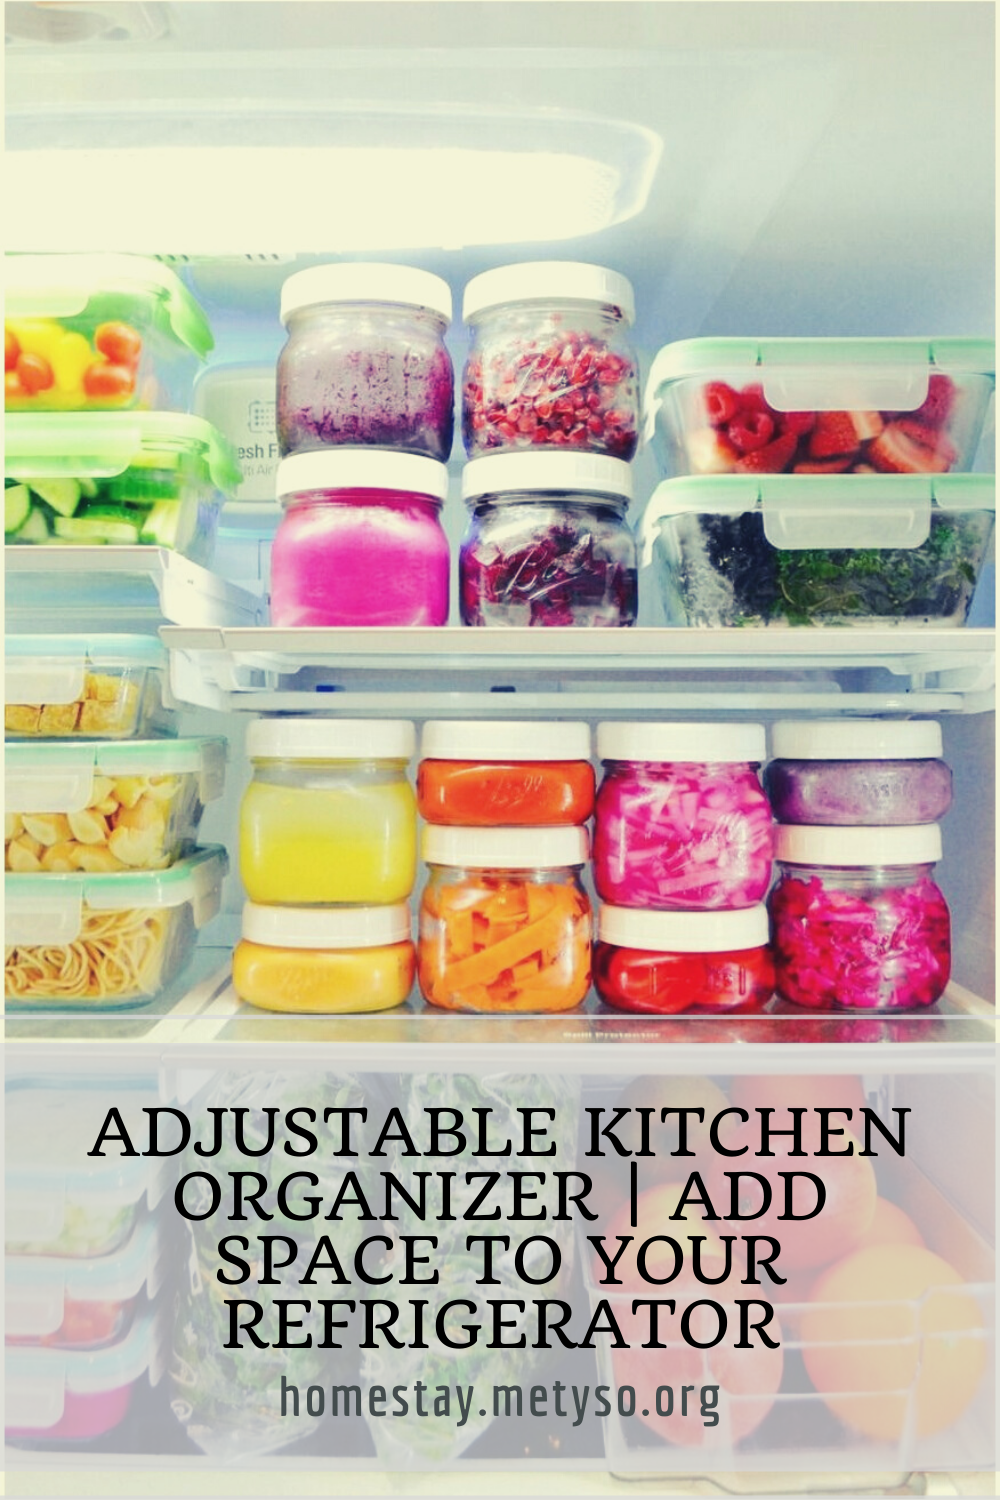 Get the inspiration you need to improve your Kitchen Organizer !High level decor ideas for everyone! Check out our decoration suggestions! #kitchenorganizer #kitchenorganizerph #kitchenorganizers #kitchenorganizermurah #kitchenorganizermurahmalaysia